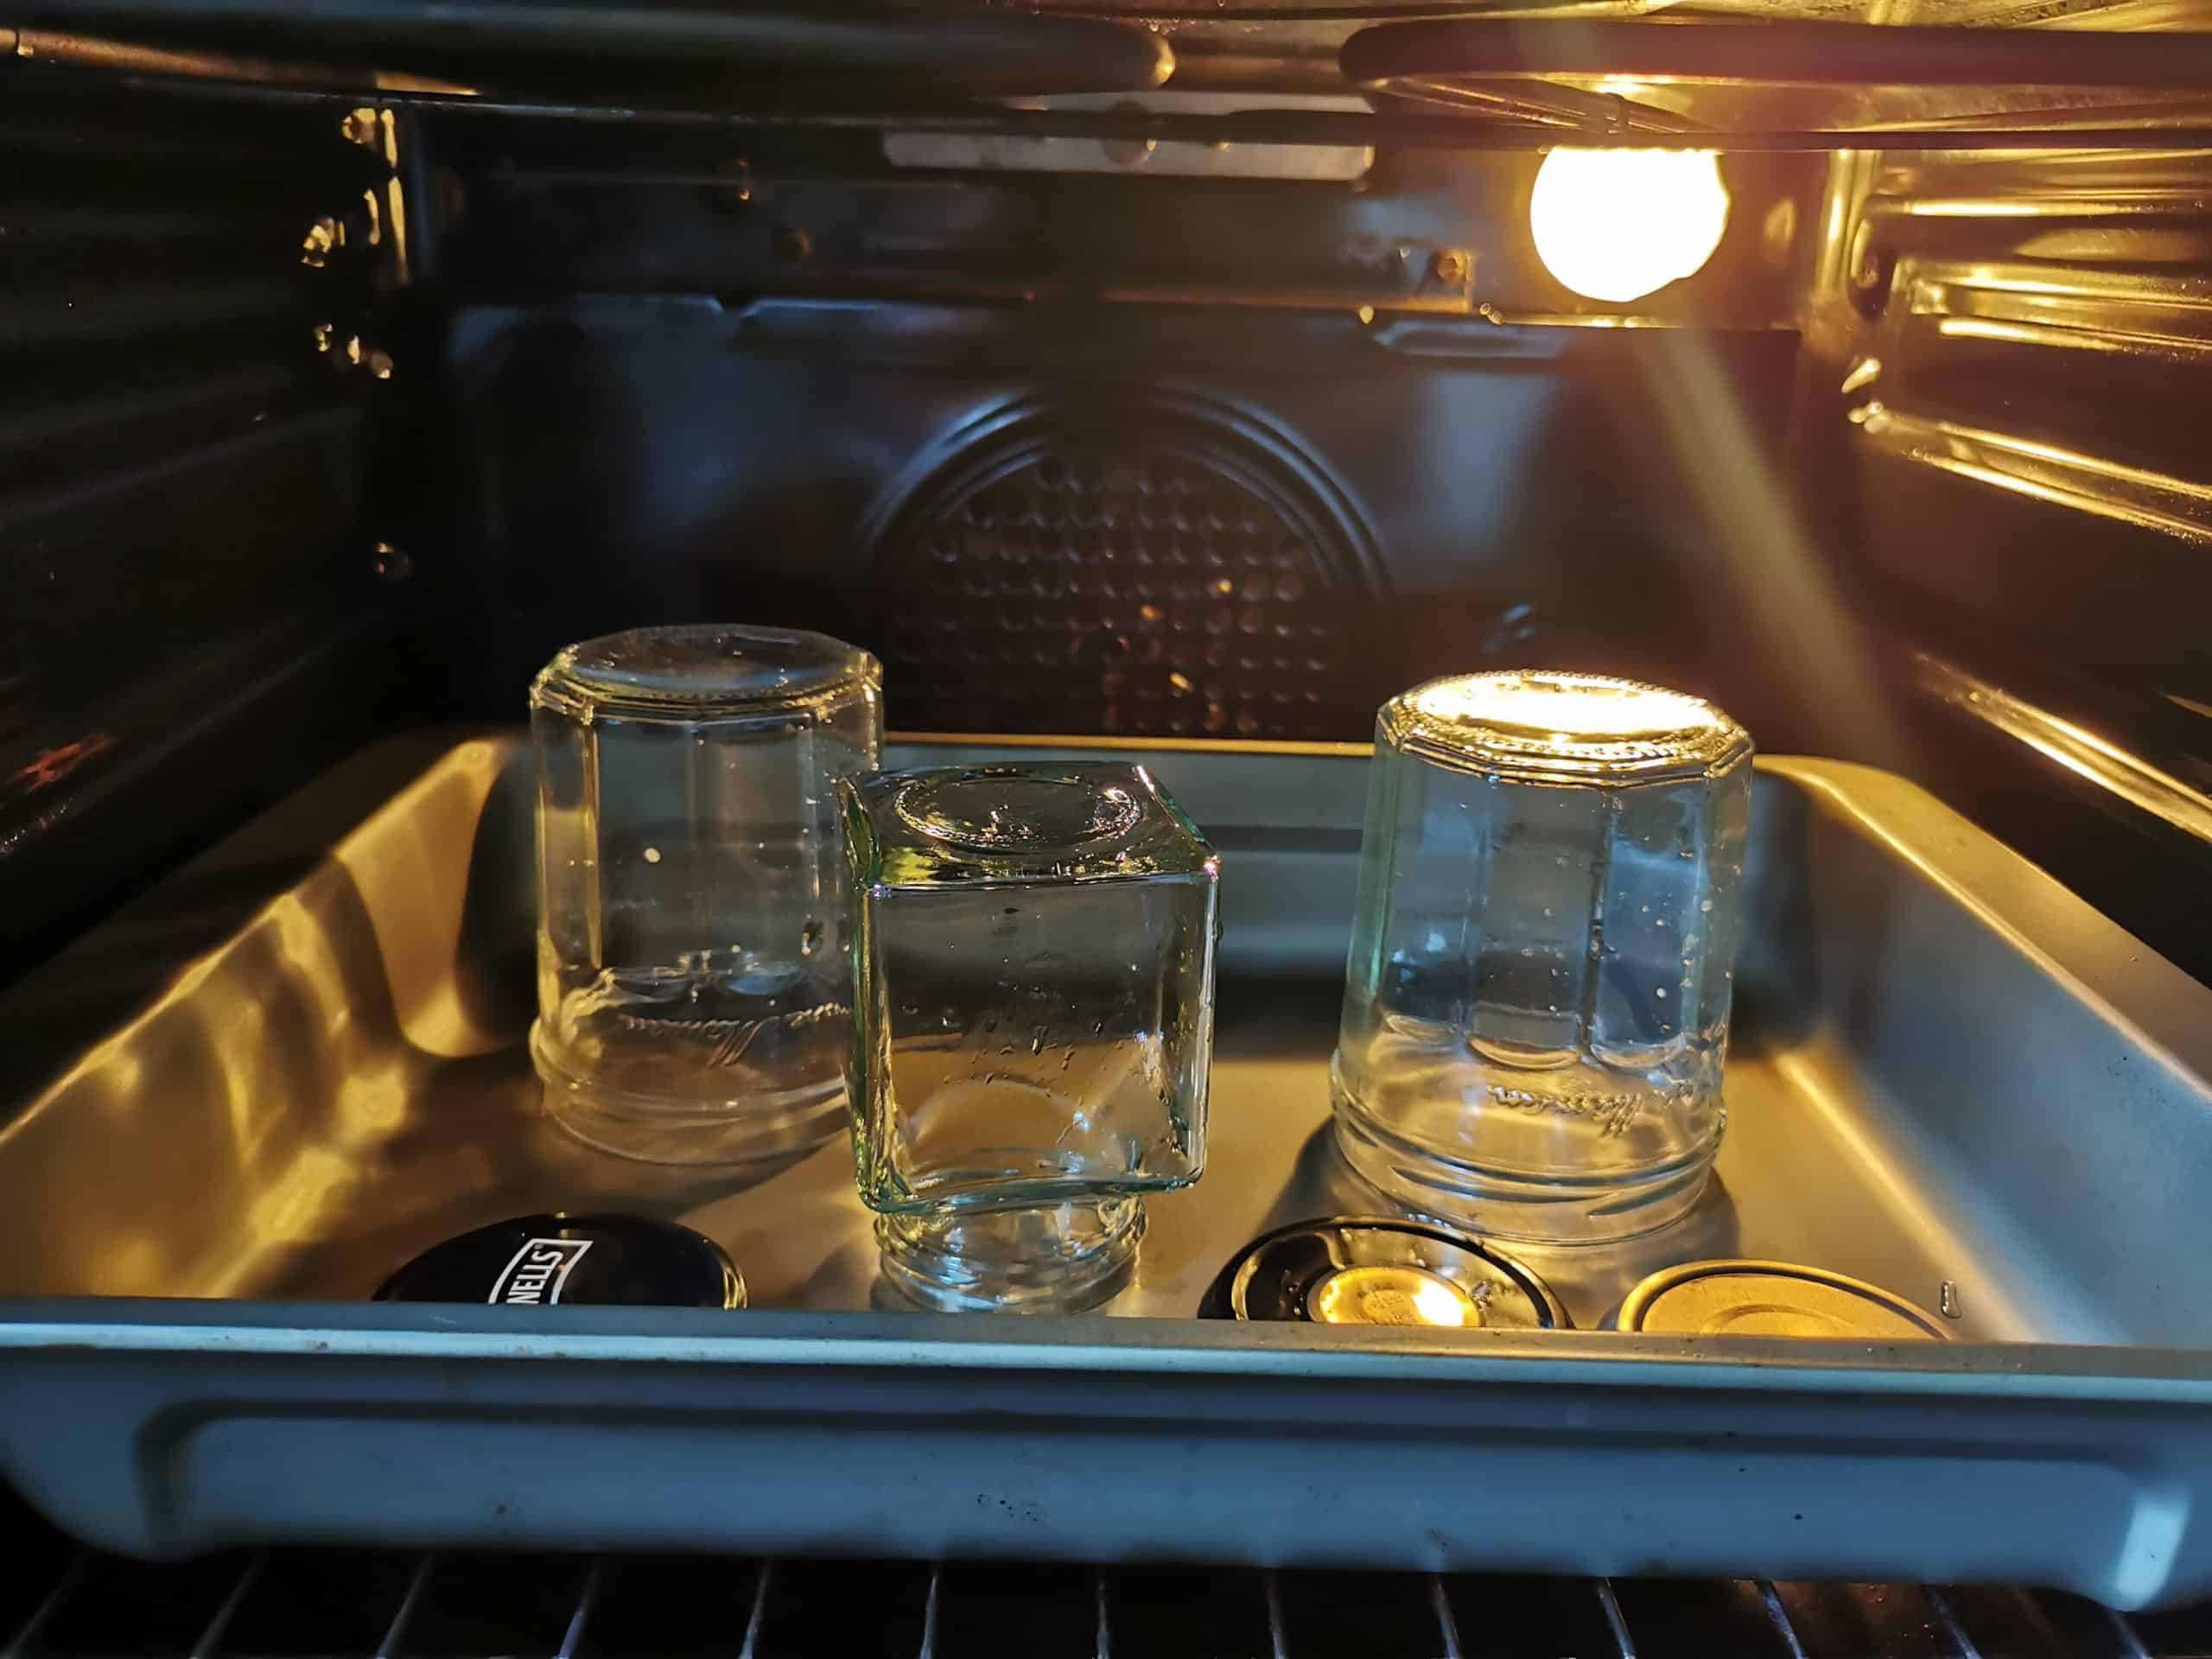 Tray of jars in oven